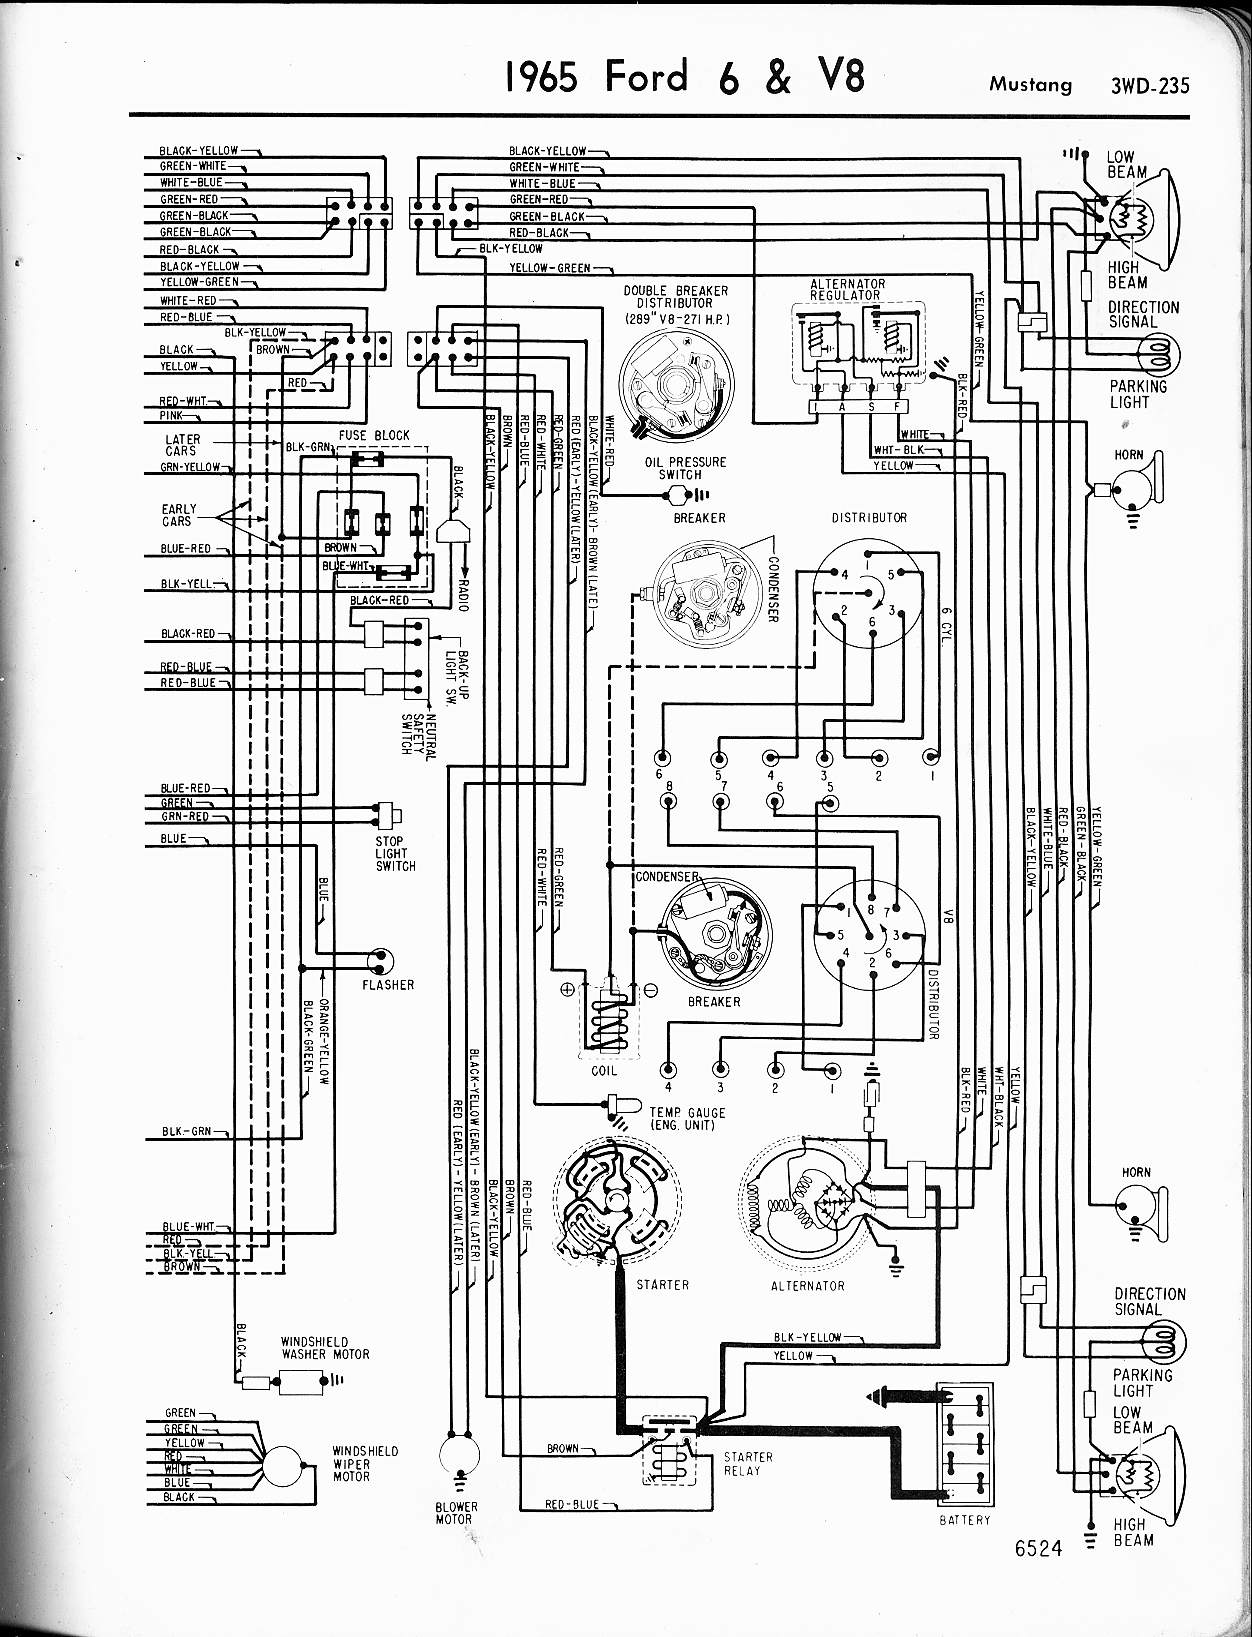 MWire5765 235 mustang wiring harness diagram 2005 2009 mustang wiring harness 1965 ford mustang wiring diagrams at gsmx.co